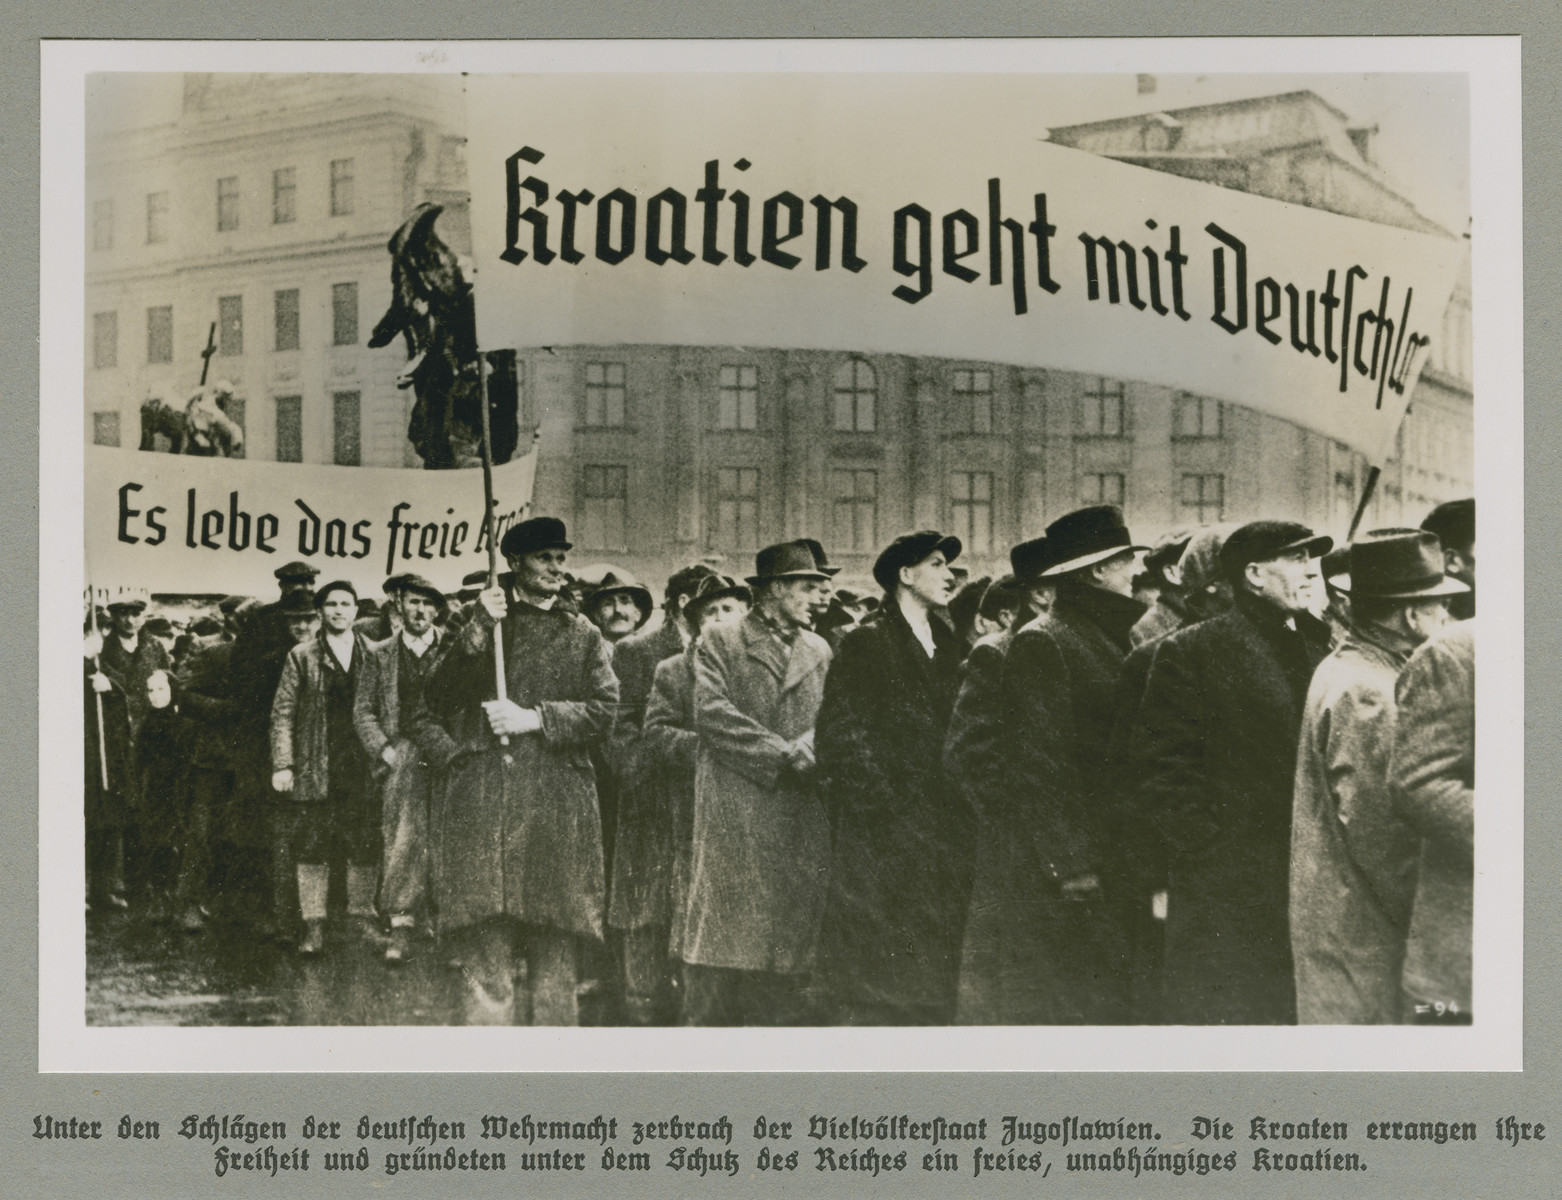 Men march through a city street holding banners celebrating Croatian independence.  Original caption reads: The multi-ethnic state of Yugoslavia broke apart under the blows of the German Wehrmacht. The Croatians won their freedom and founded a free and independent Croatia under the protection of the Reich.